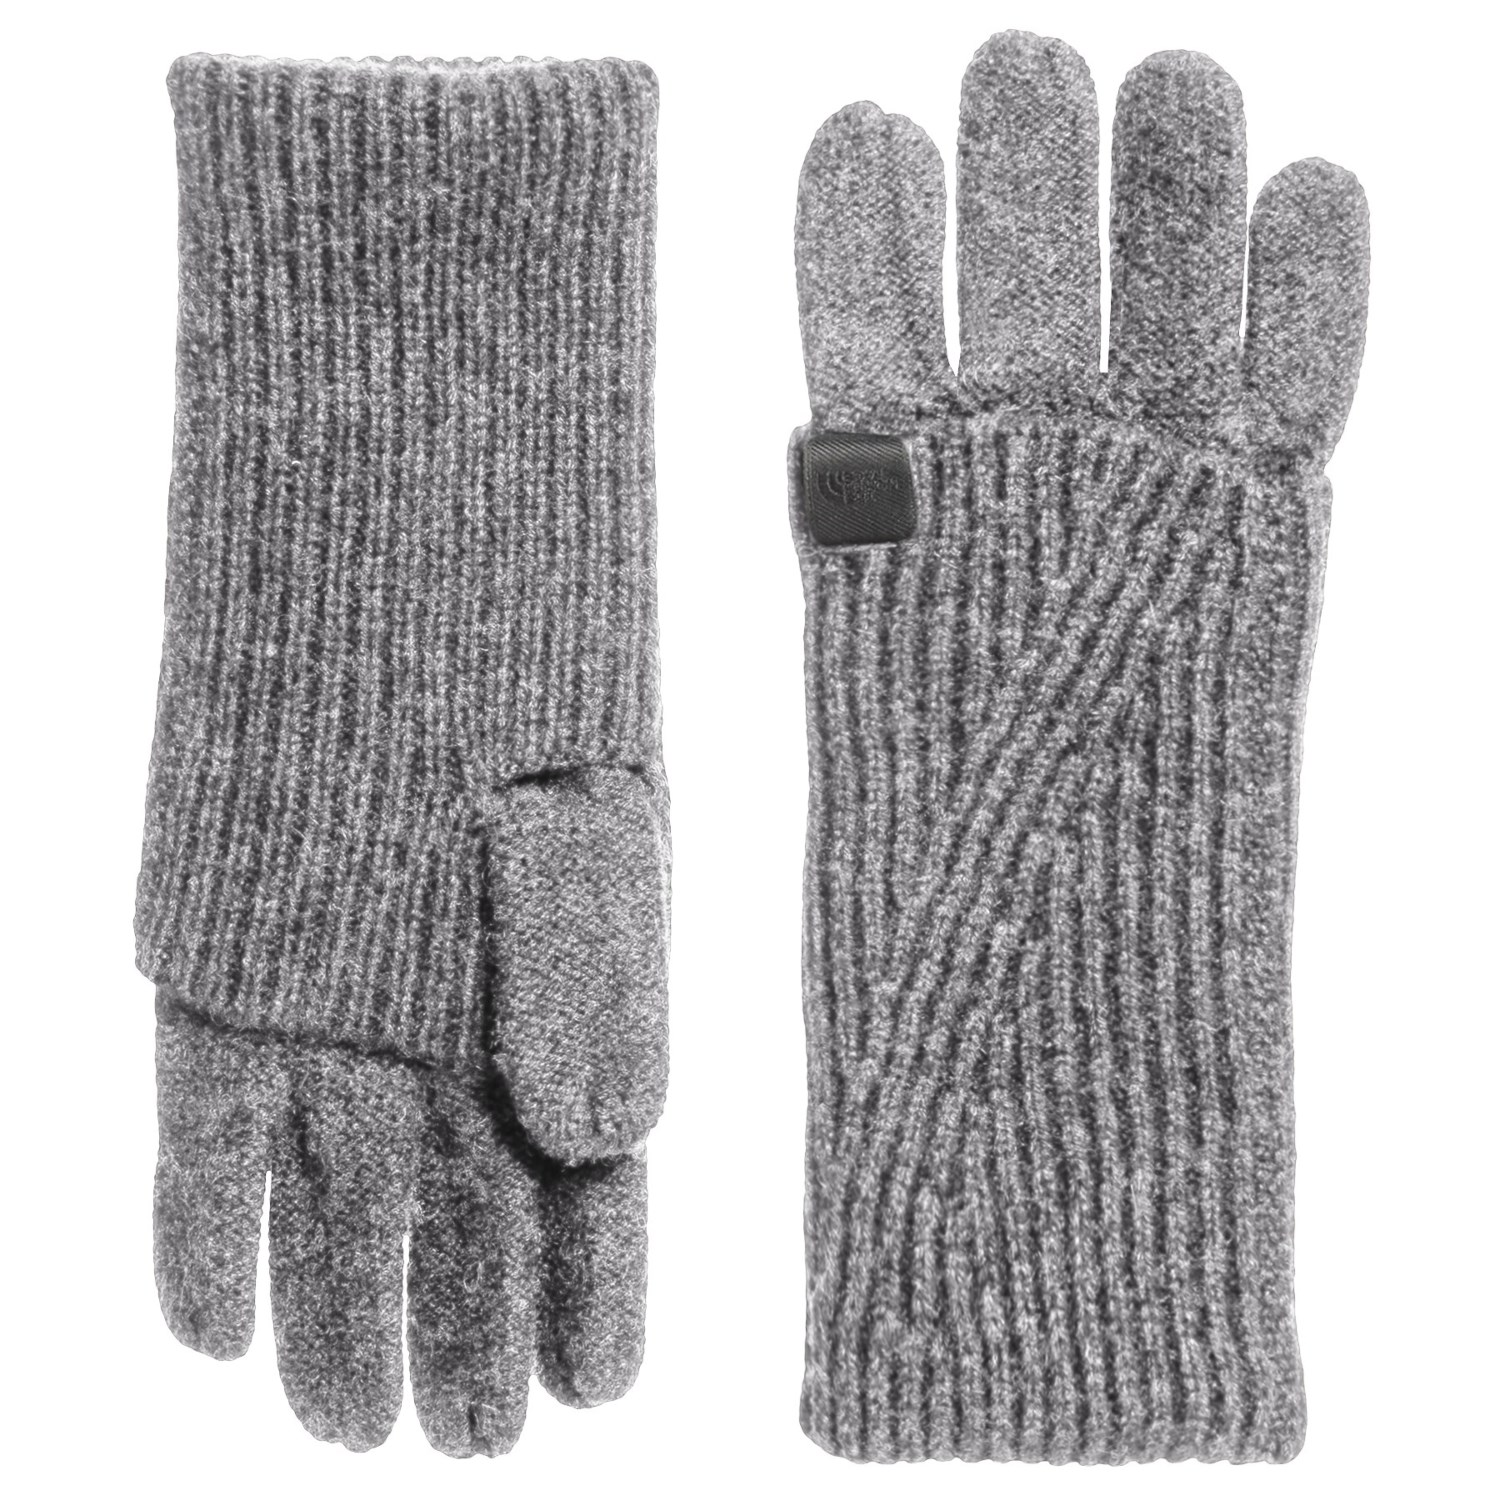 dfe89f6a6 The North Face Cryos Cashmere Gloves (For Men)